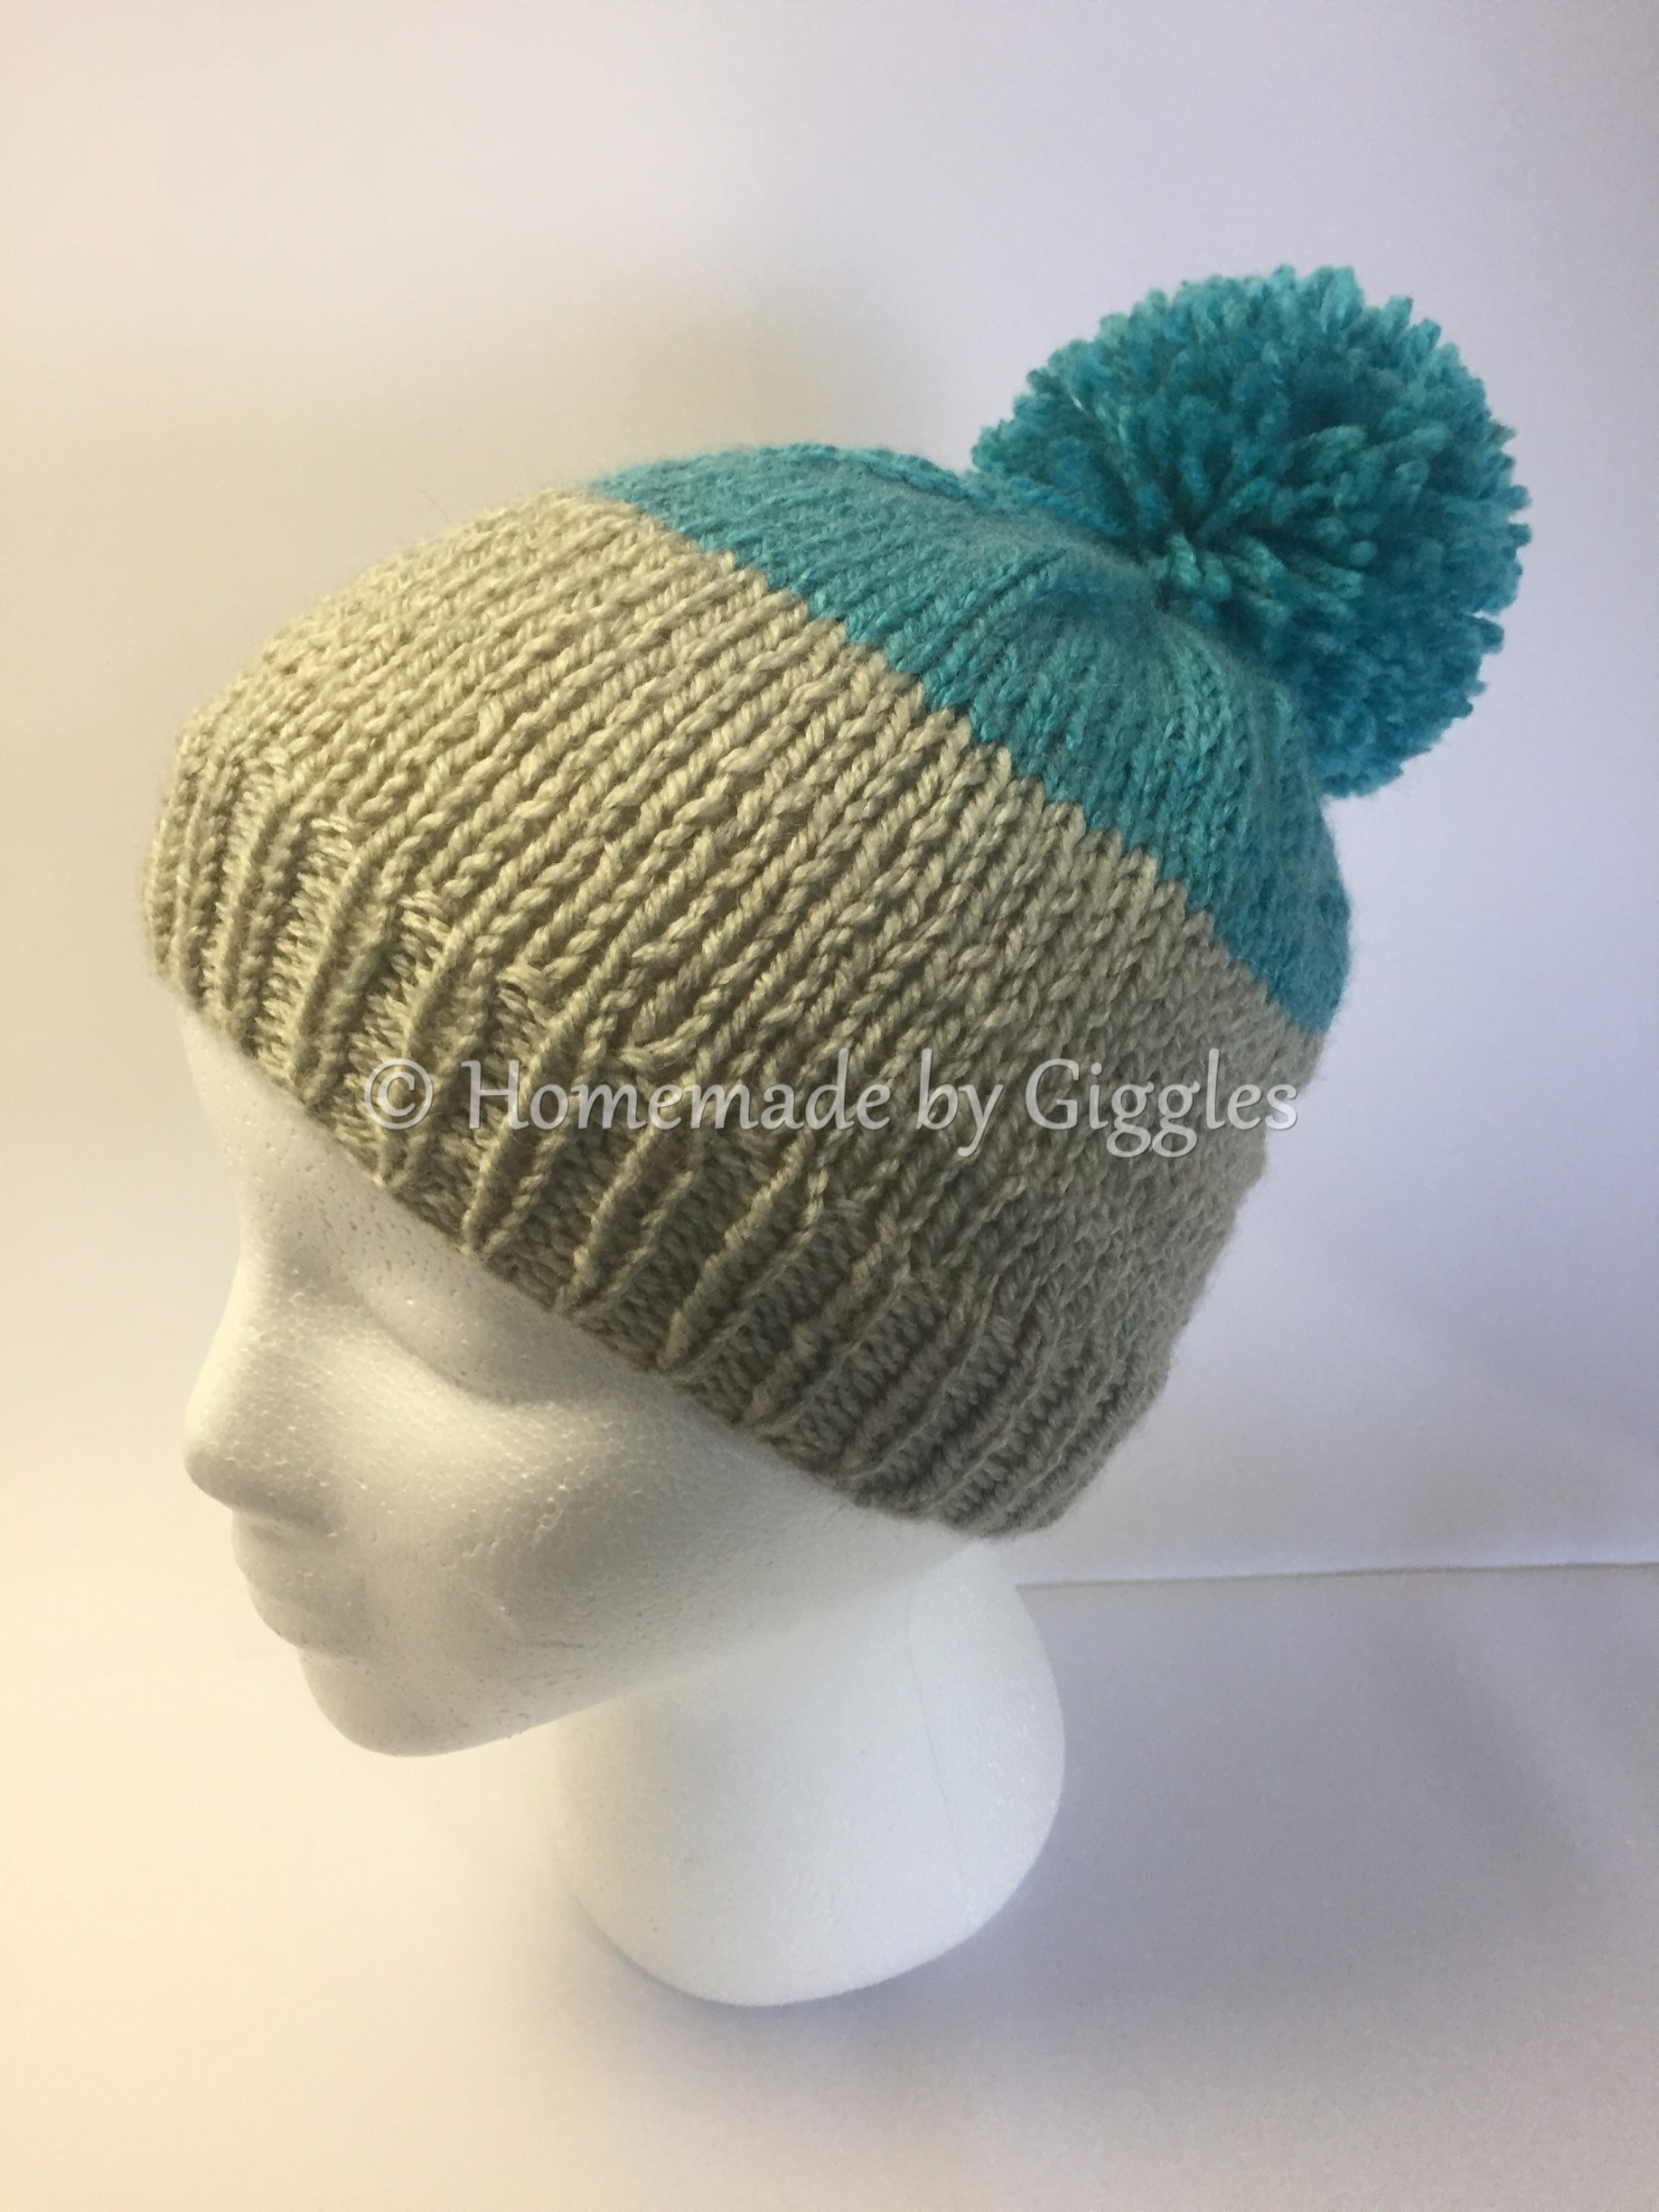 Basic Knit Hat Pattern – Homemade by Giggles